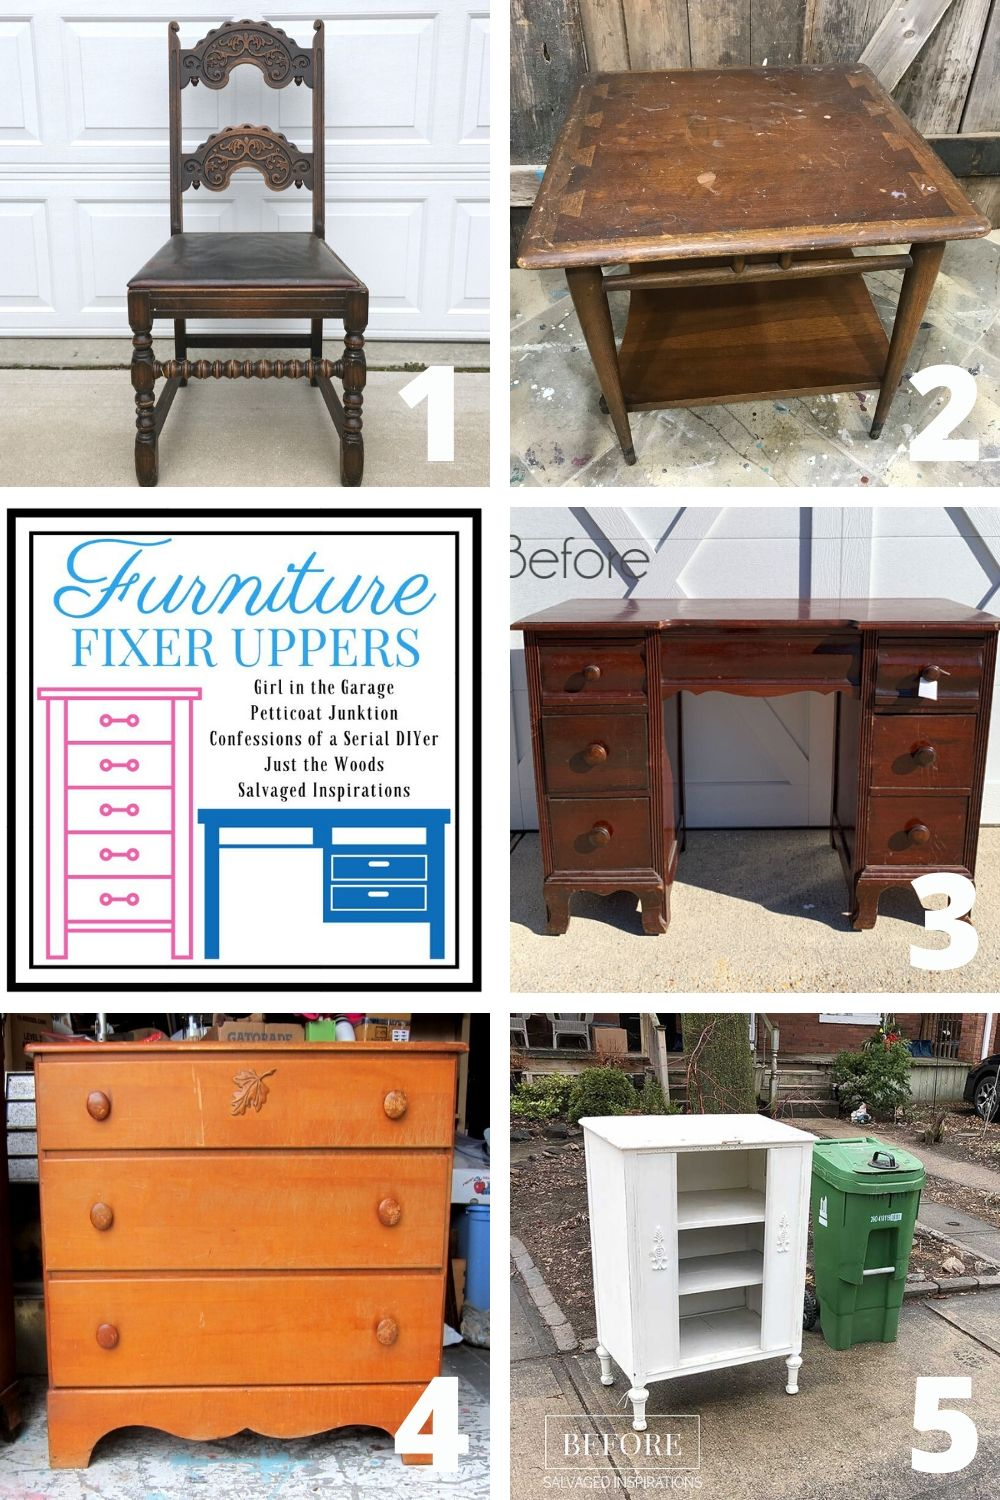 Furniture Fixer Upper - Befores 20200326